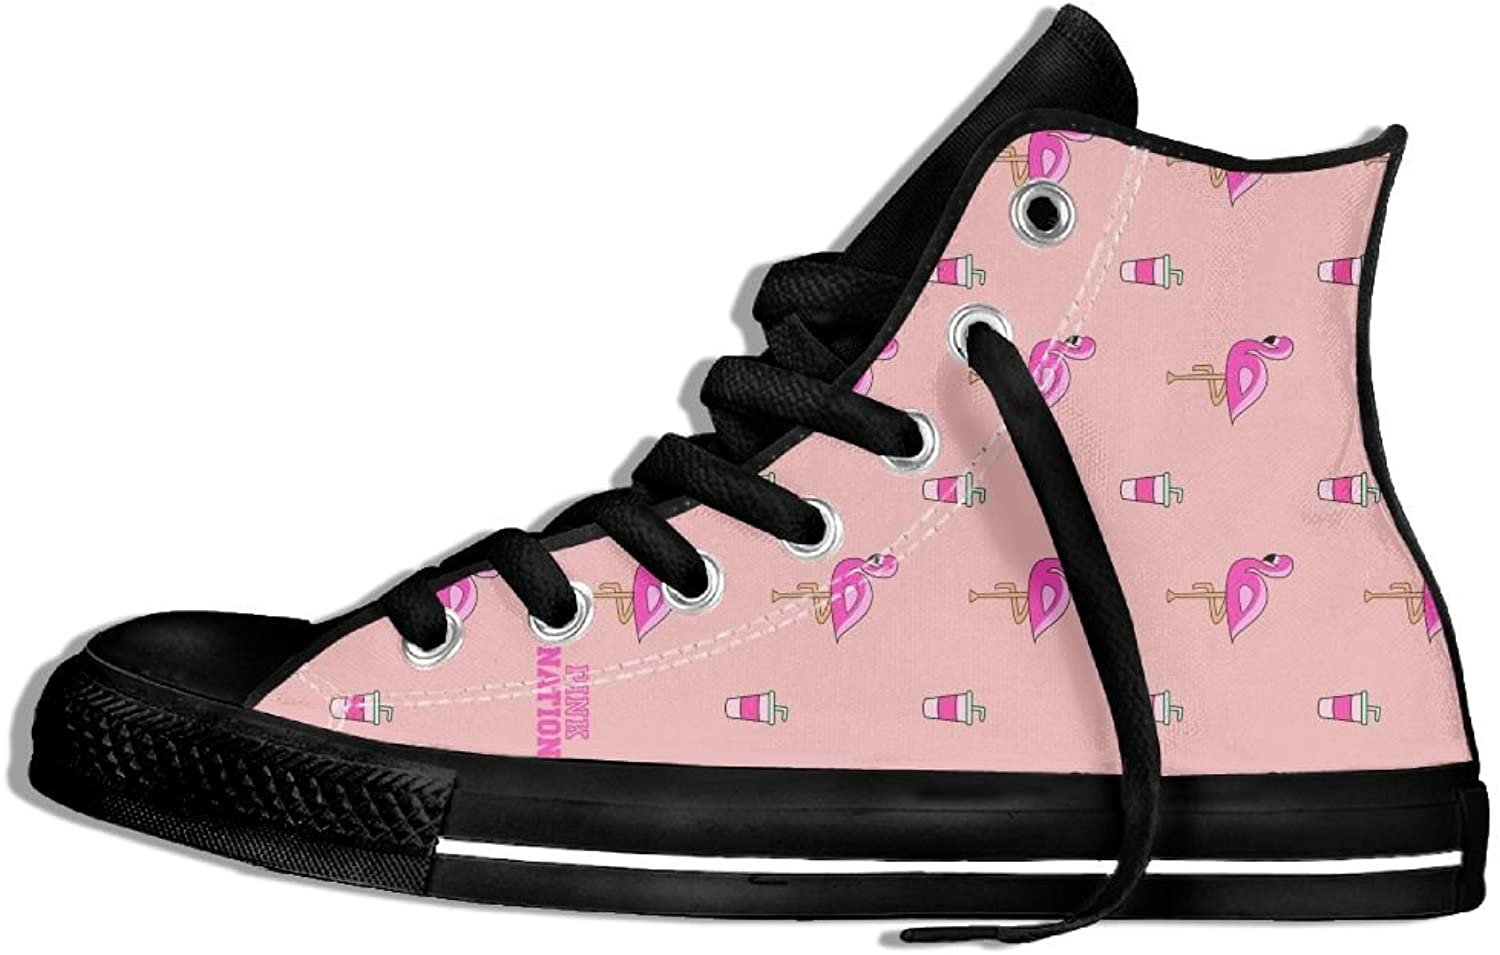 Unisex High-Top Canvas Sneakers Cute Pink Flamingos Round Toe Anti-slip Walking Trainers shoes